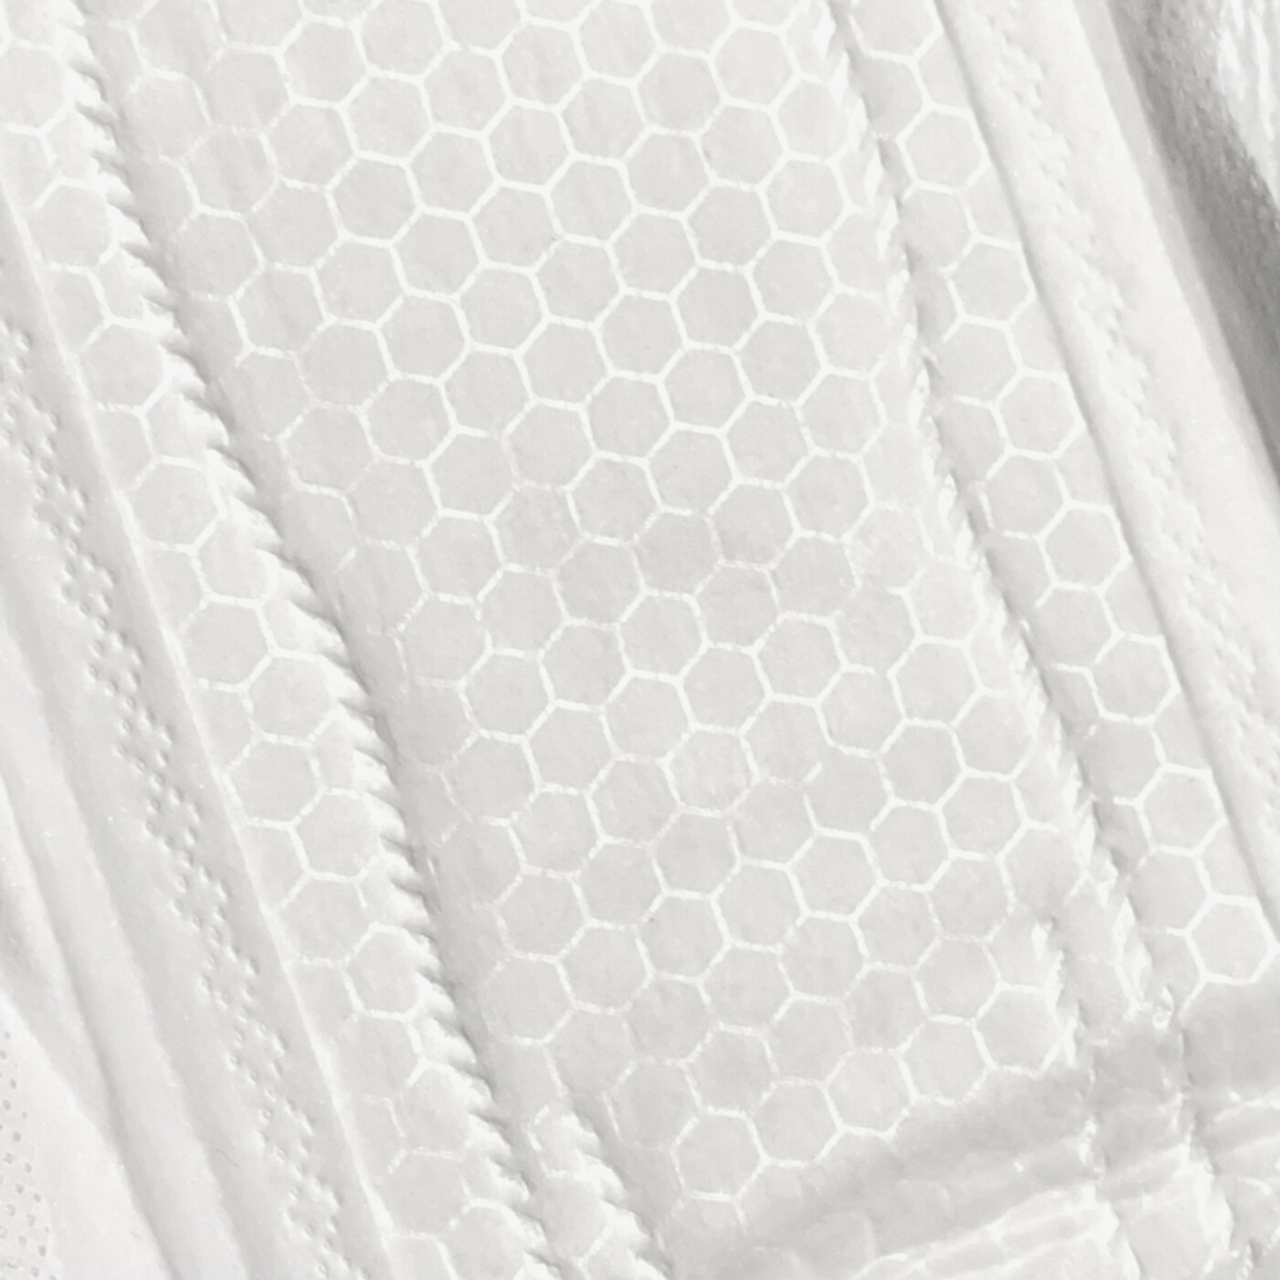 New Beginnings Bamboo Maternity Pads at Baby Barn Discounts Relax in secure comfort! The best protection, with a silky soft design that provides ultimate comfort. Sustainable, moisture wicking and antibacterial.